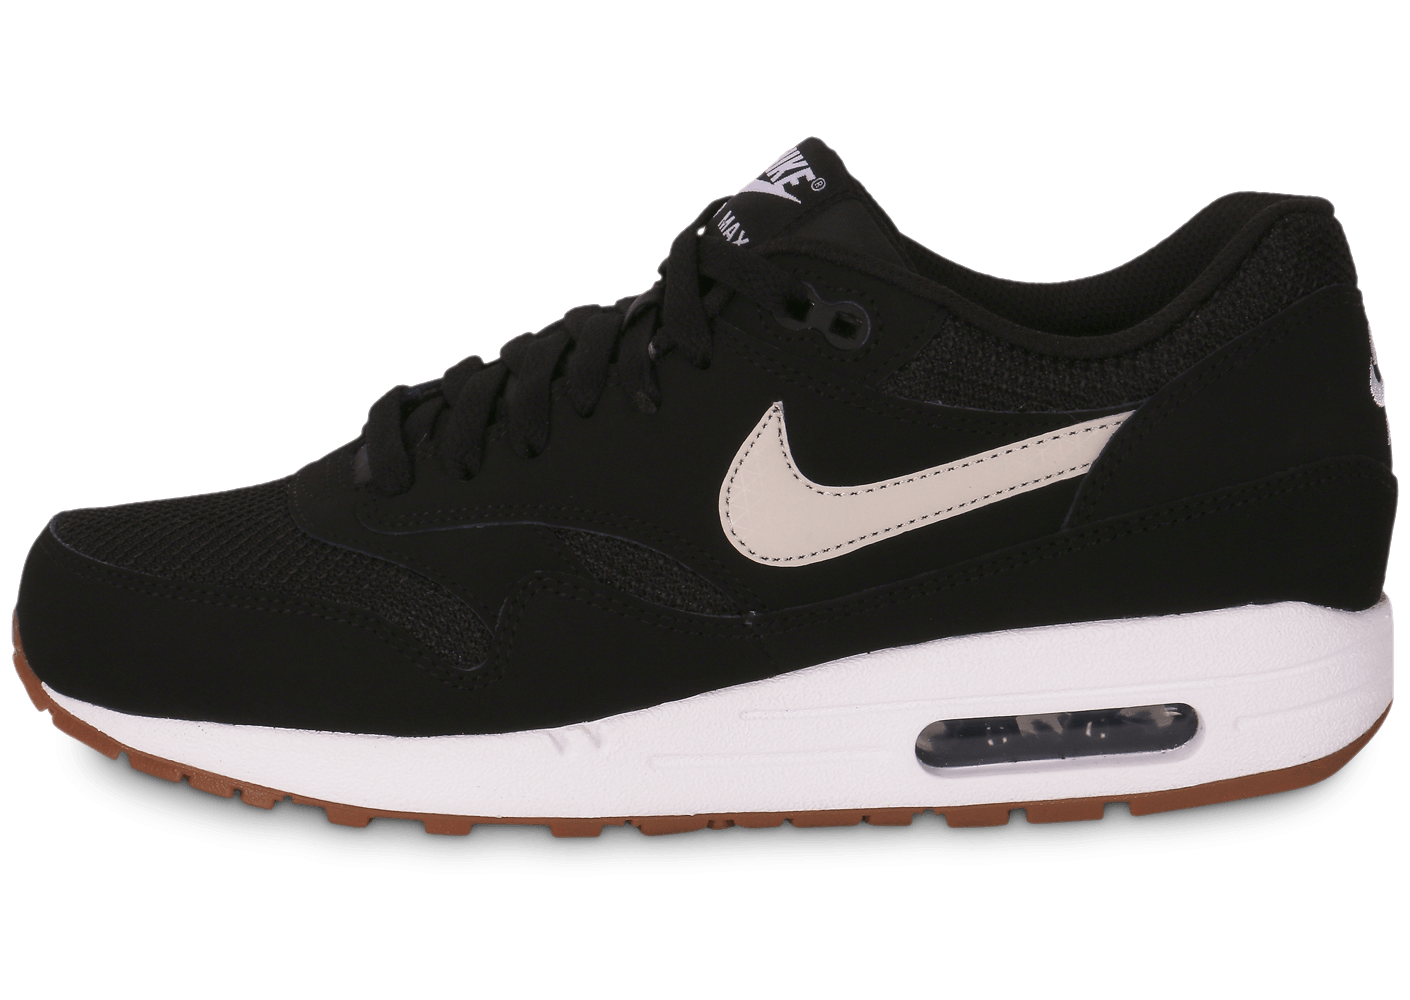 18c28758a8c ... ireland nike air max 1 essential black gum chaussures baskets homme  chausport 0e972 5c074